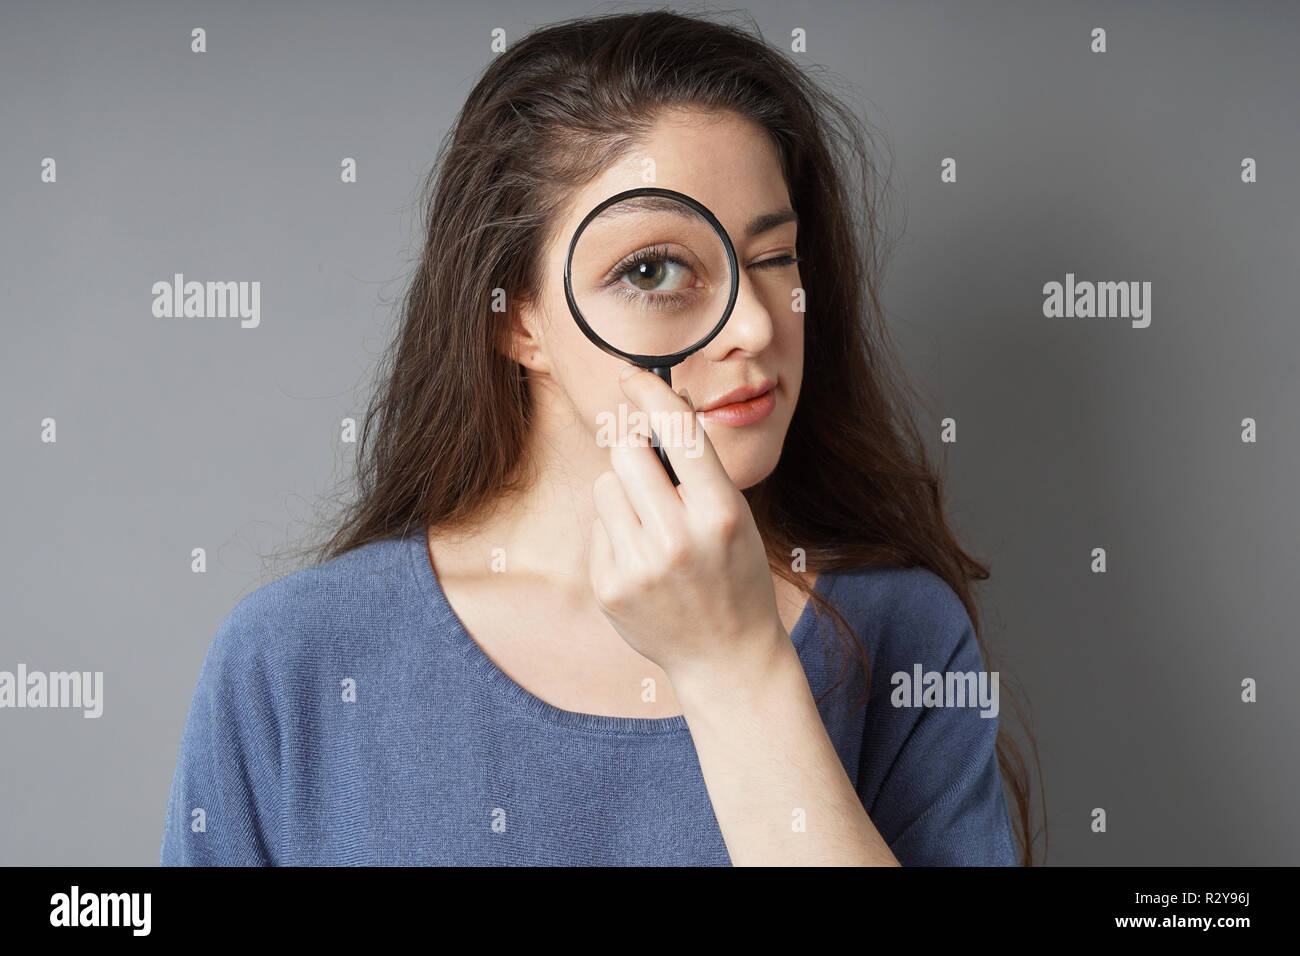 young woman looking through magnifying glass - detective spy audit search concept - Stock Image